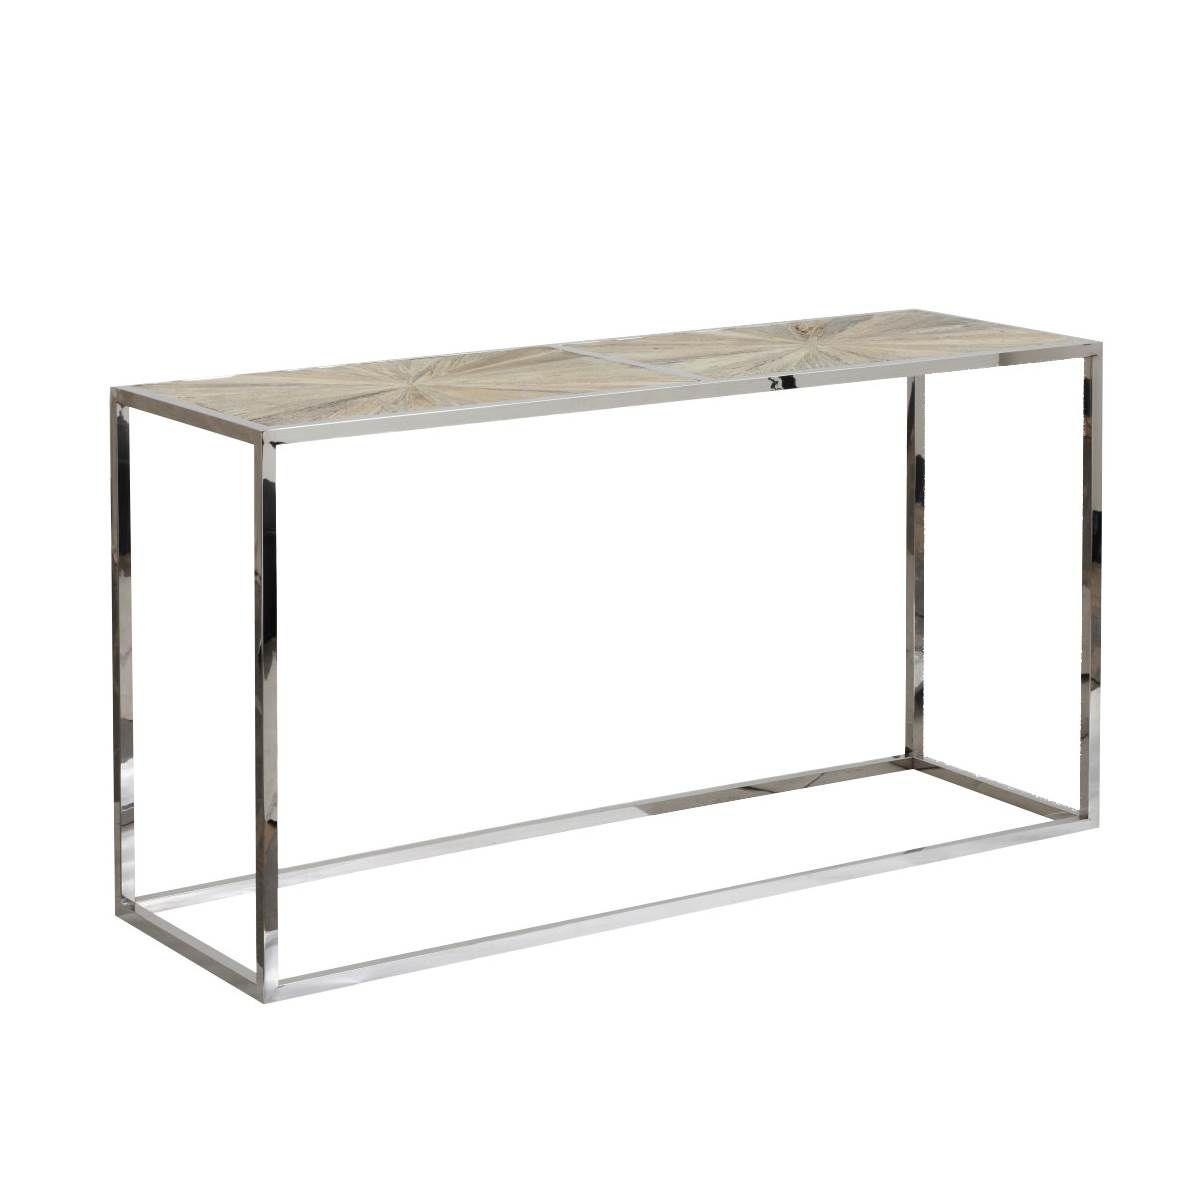 Parquet Console Table | Marshall | Pinterest Pertaining To Parsons White Marble Top & Stainless Steel Base 48X16 Console Tables (Photo 20 of 30)